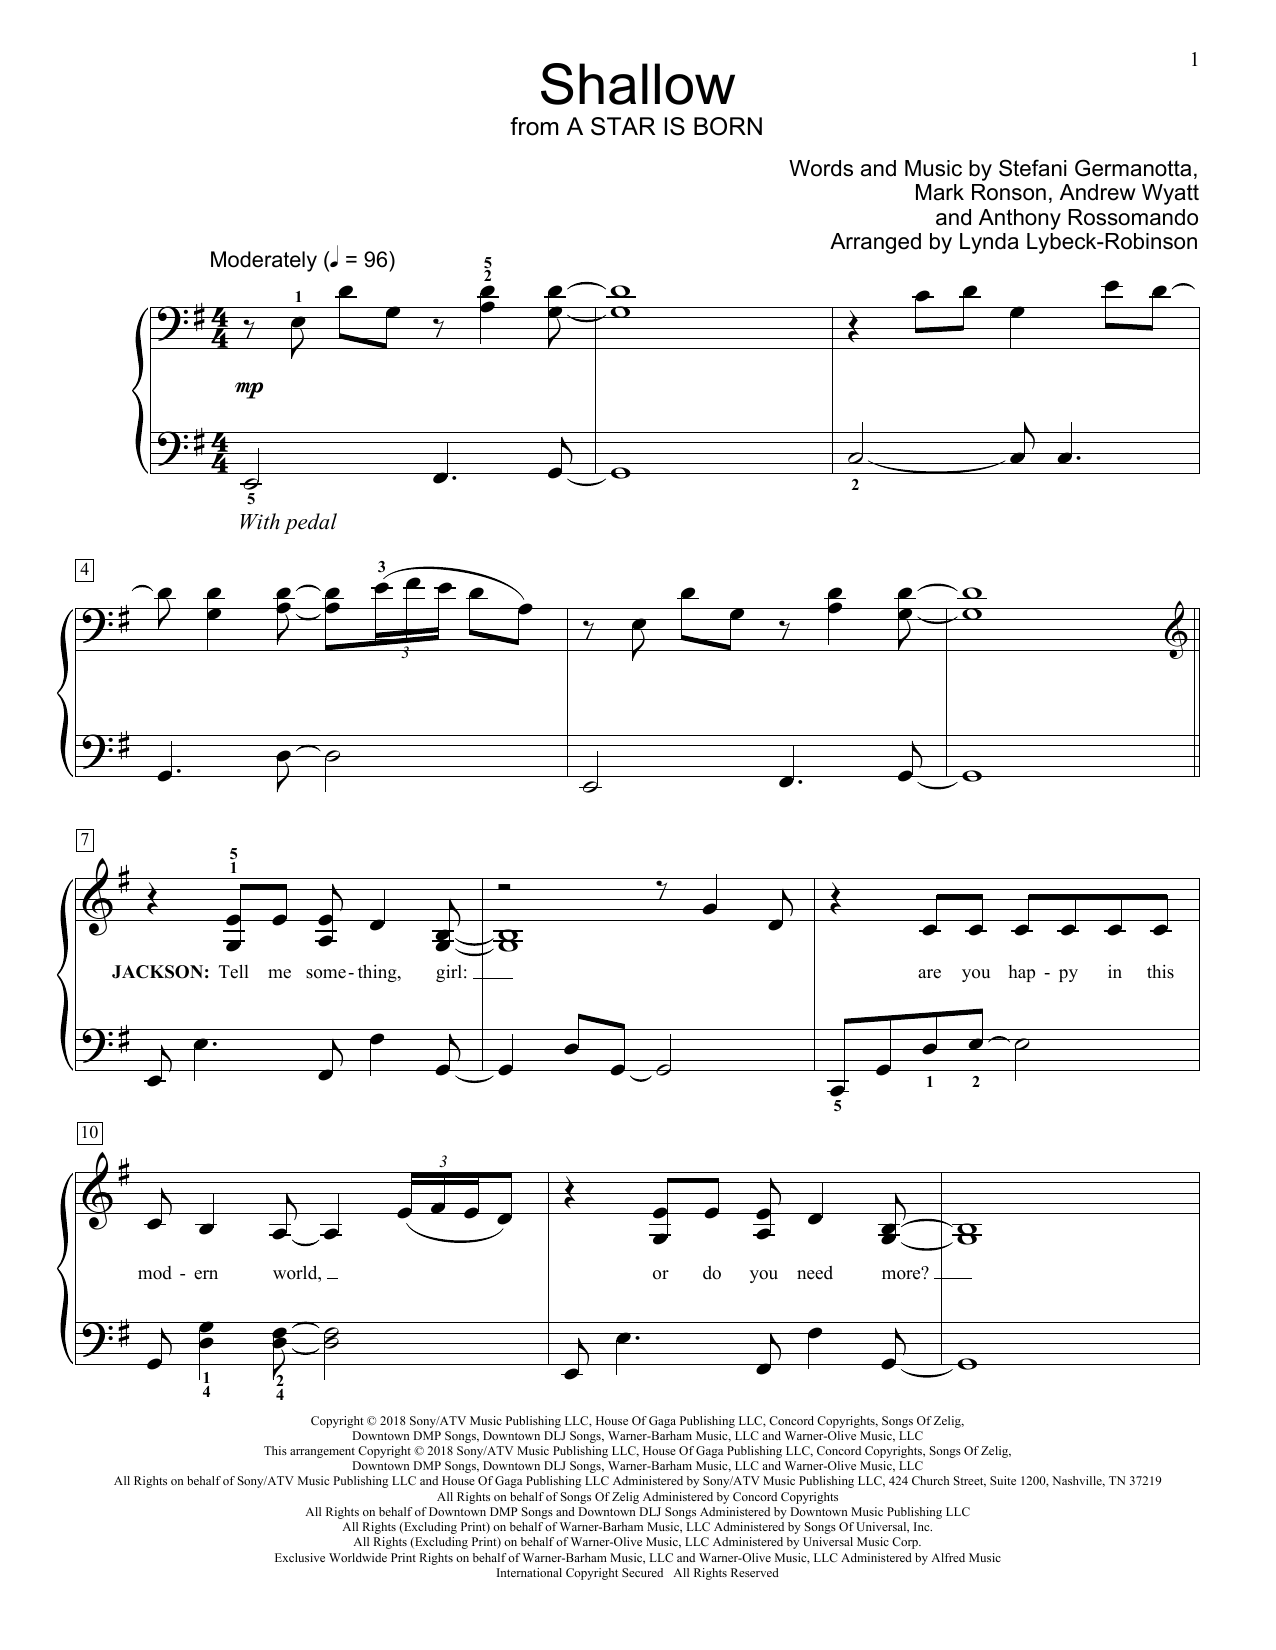 Lady Gaga Bradley Cooper Shallow From A Star Is Born Arr Lynda Lybeck Robinson Sheet Music Pdf Notes Chords Film Tv Score Educational Piano Download Printable Sku 411179